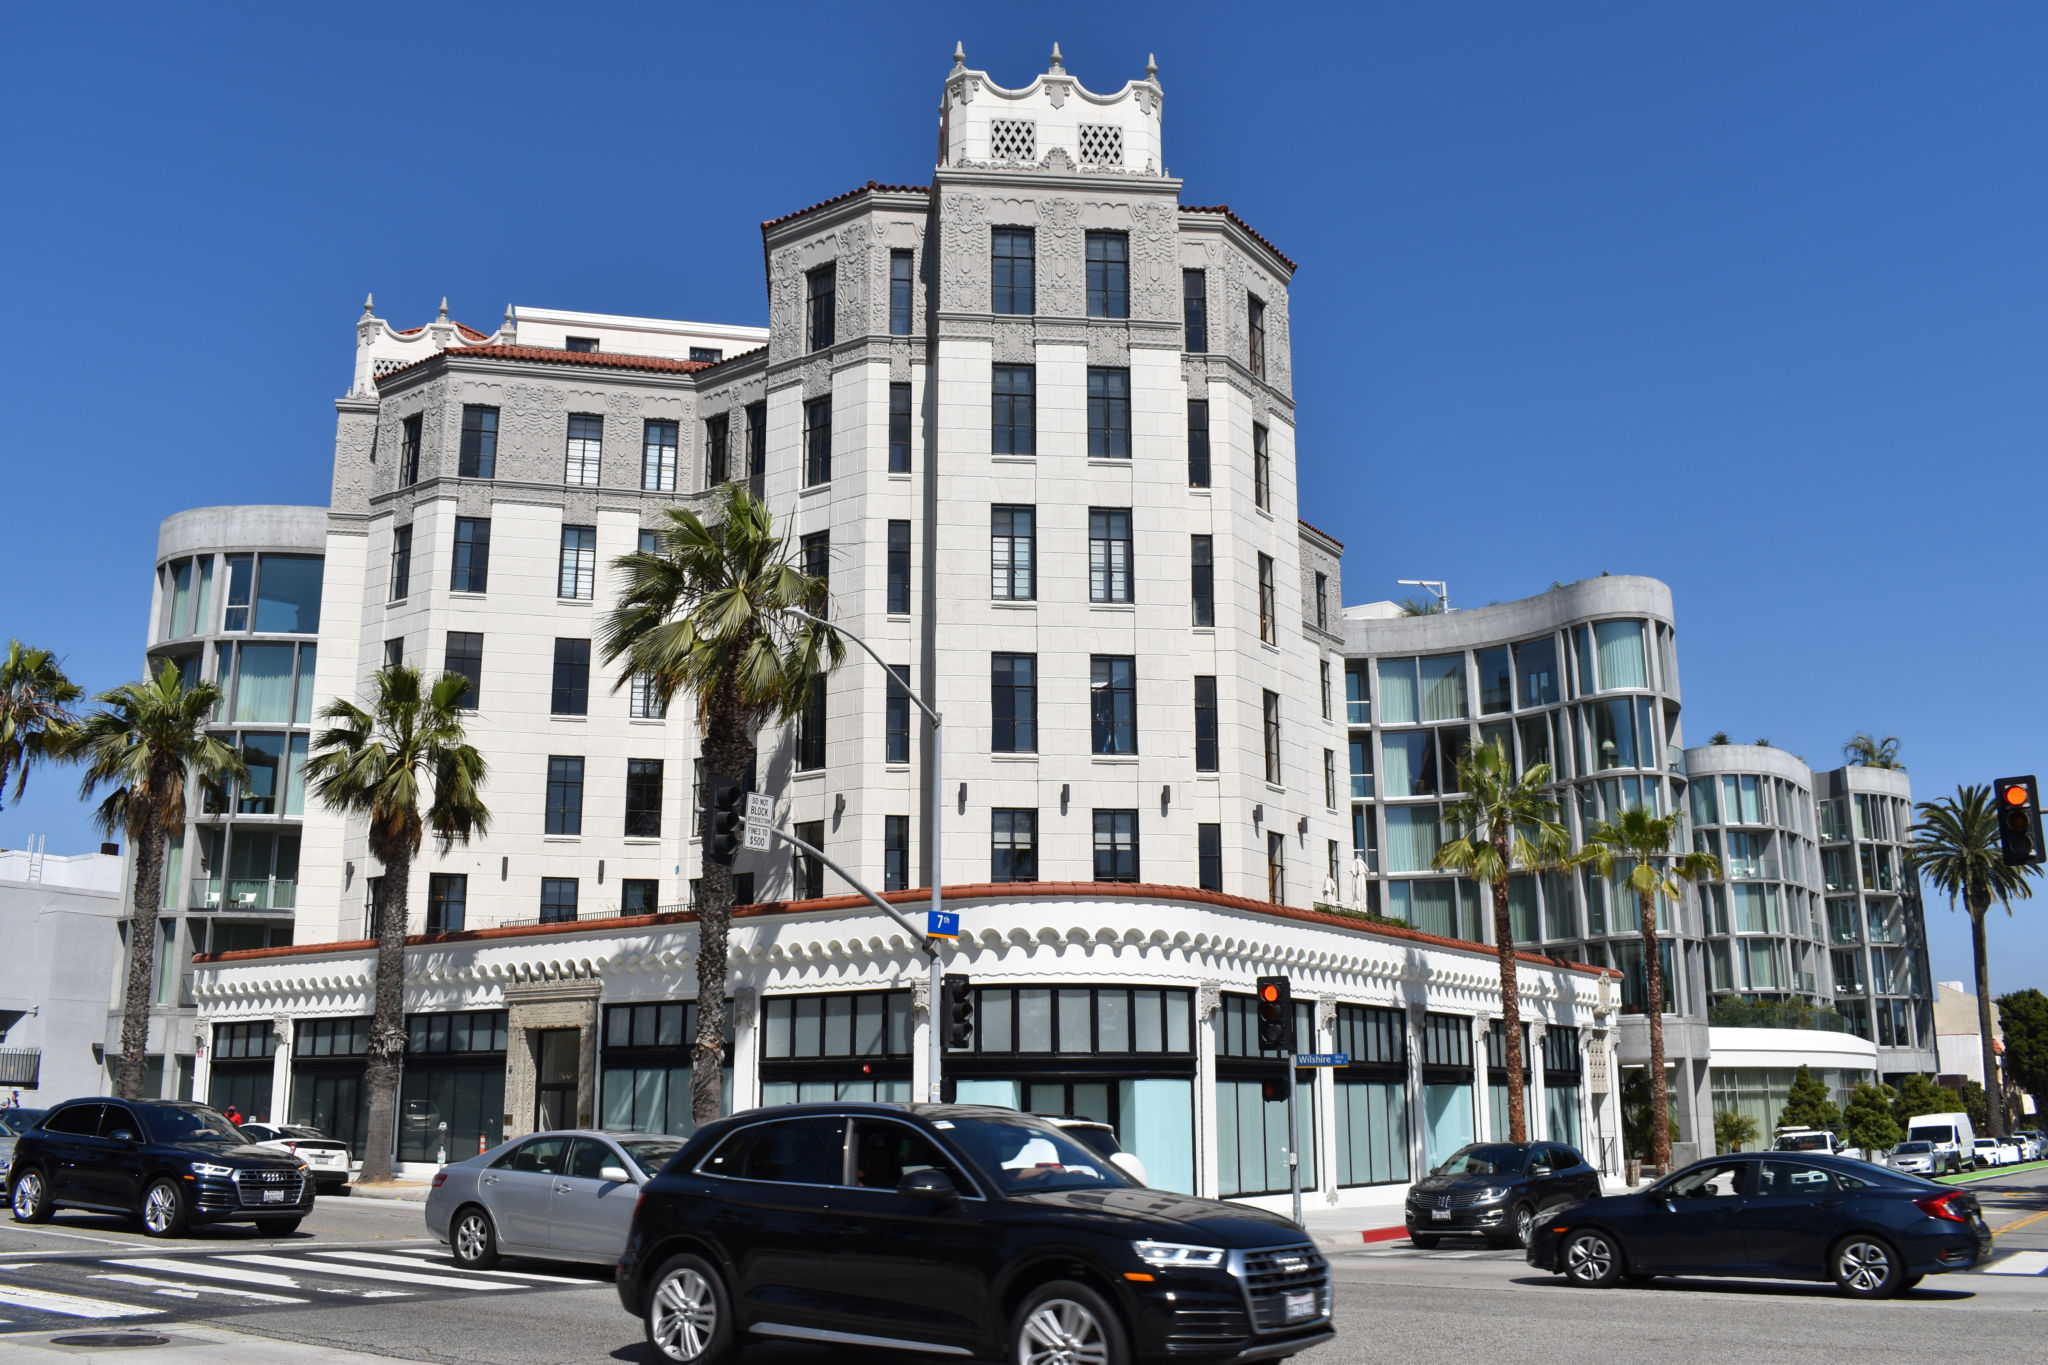 Proper Hotels Comes Home With New Santa Monica Property